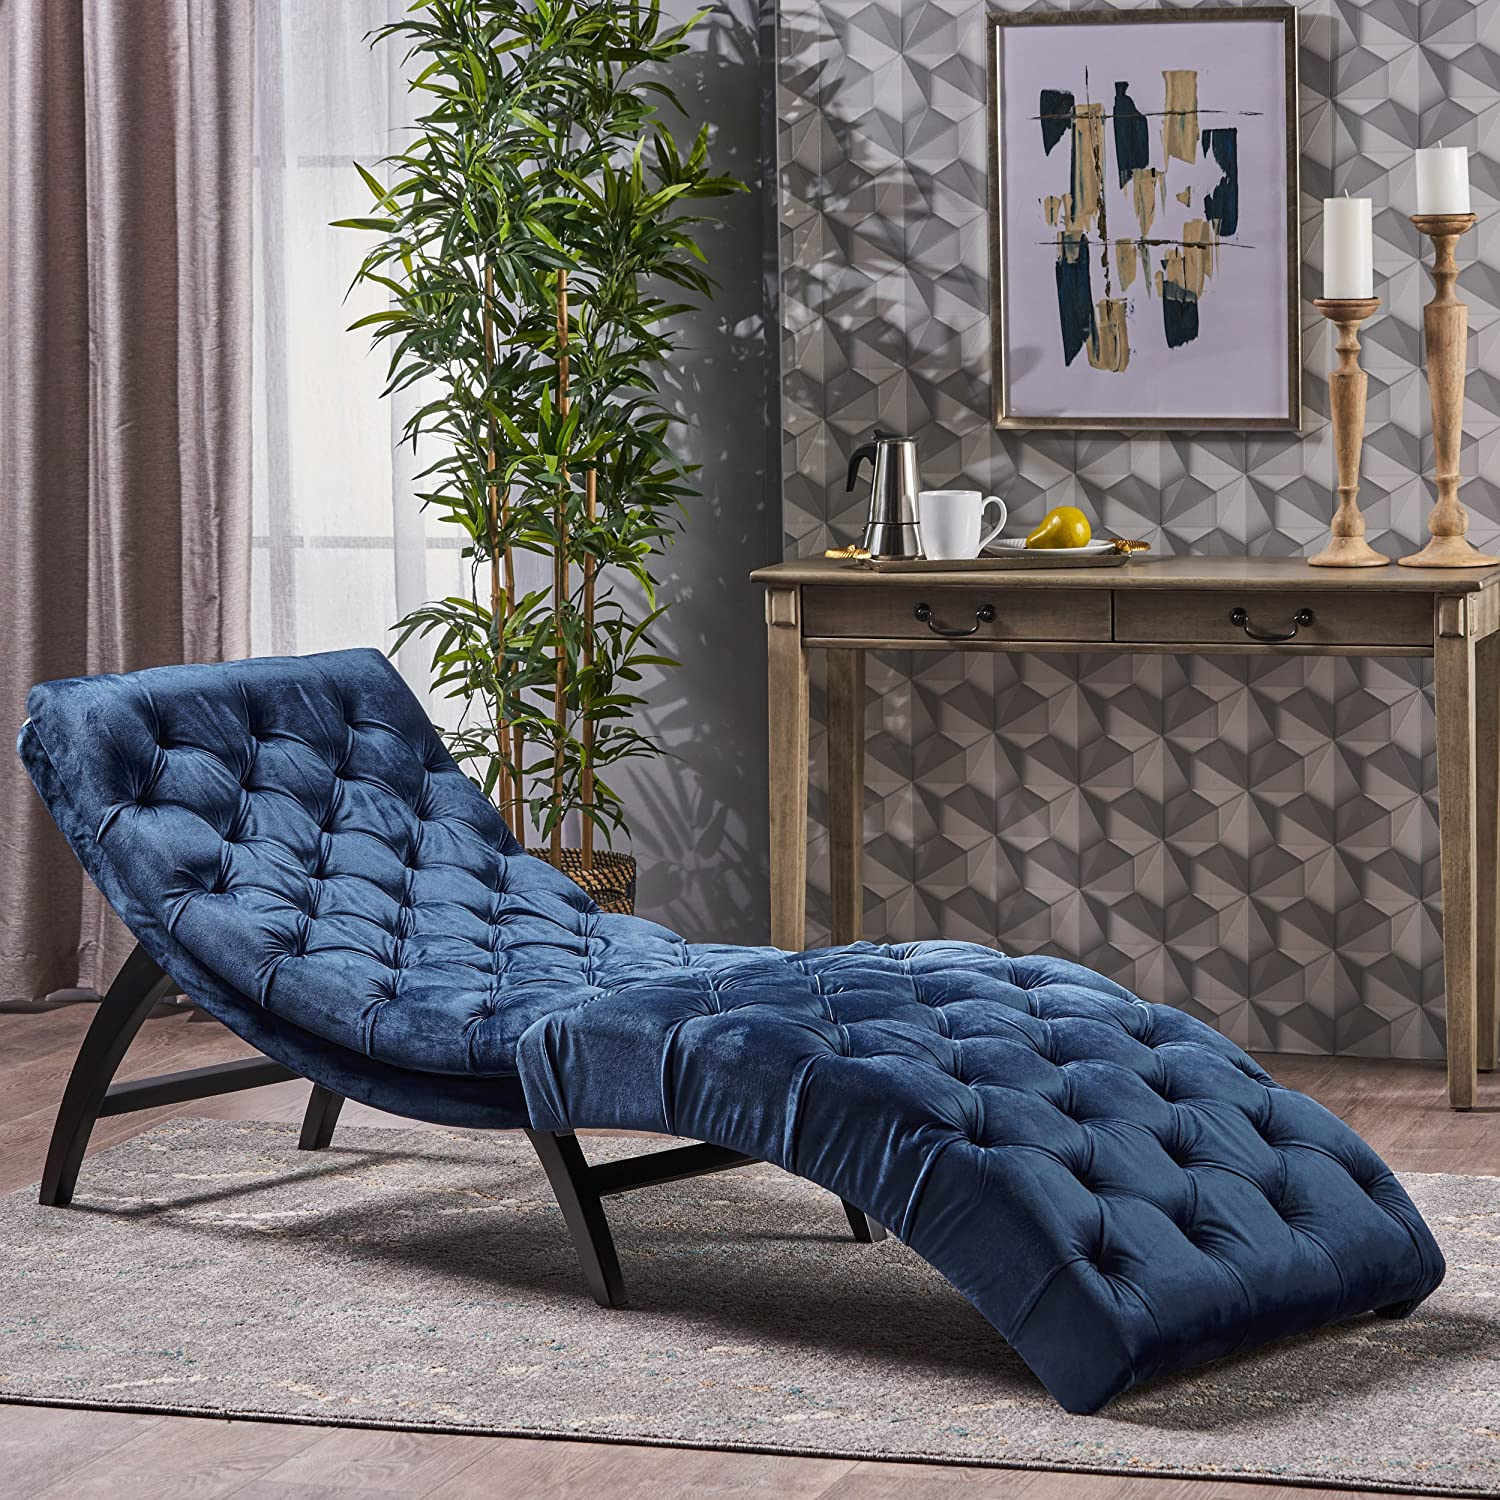 Great Deal Furniture 302204 Garamond Cobalt Velvet Chaise Lounge, Dark Brown